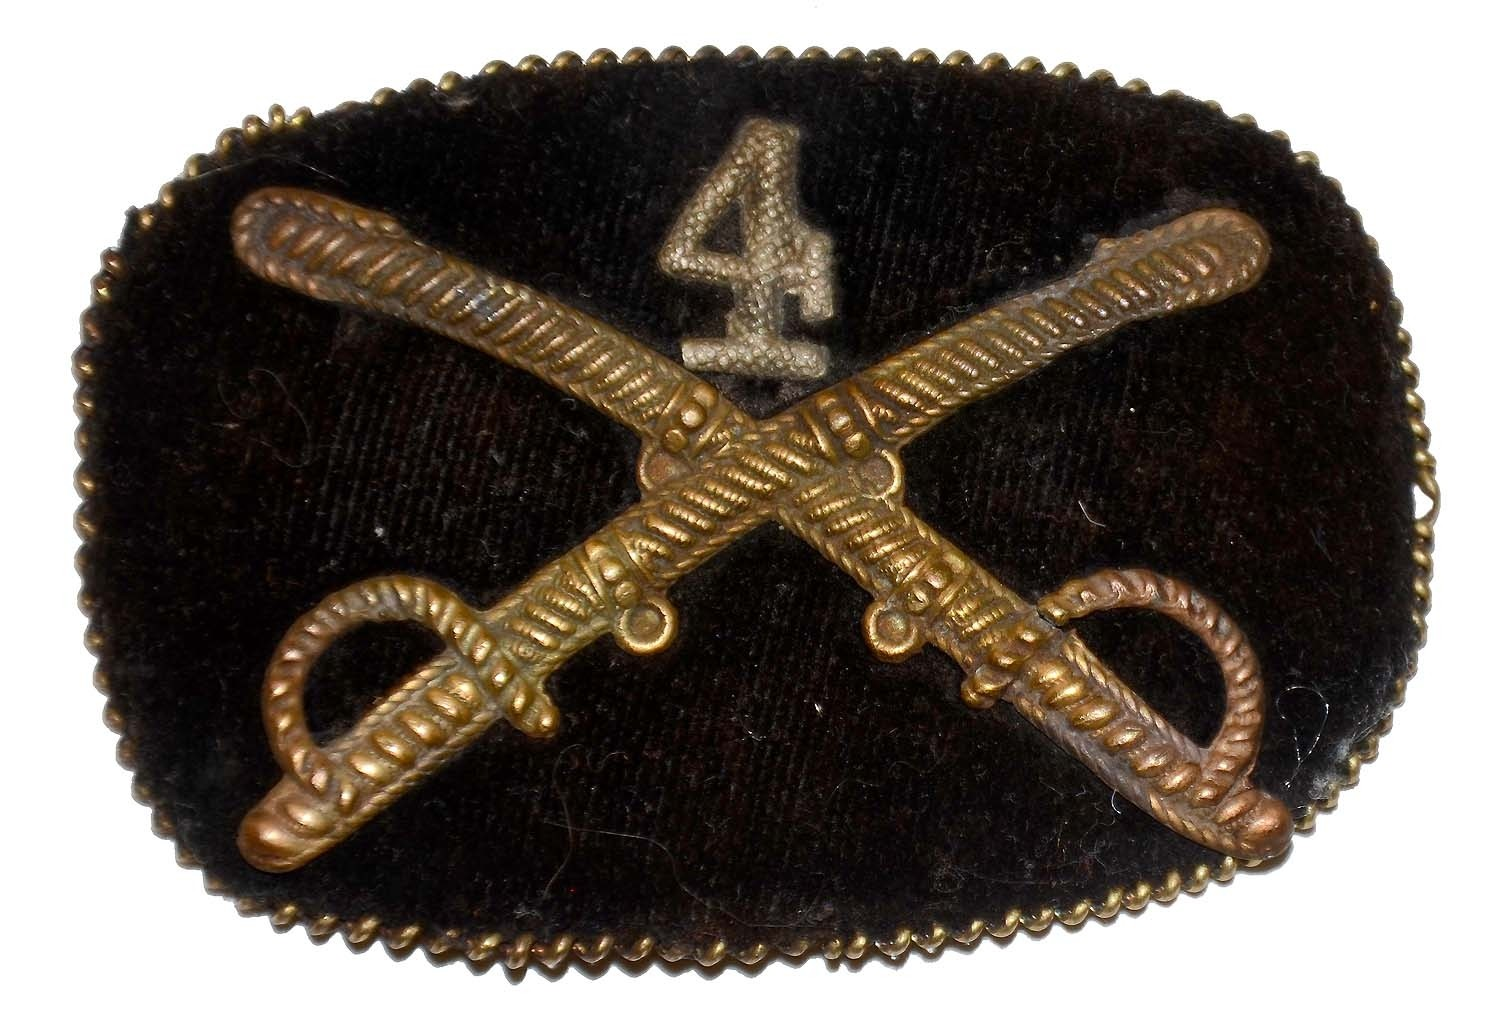 CIVIL WAR CAVALRY OFFICER HAT INSIGNIA — 4TH CAVALRY